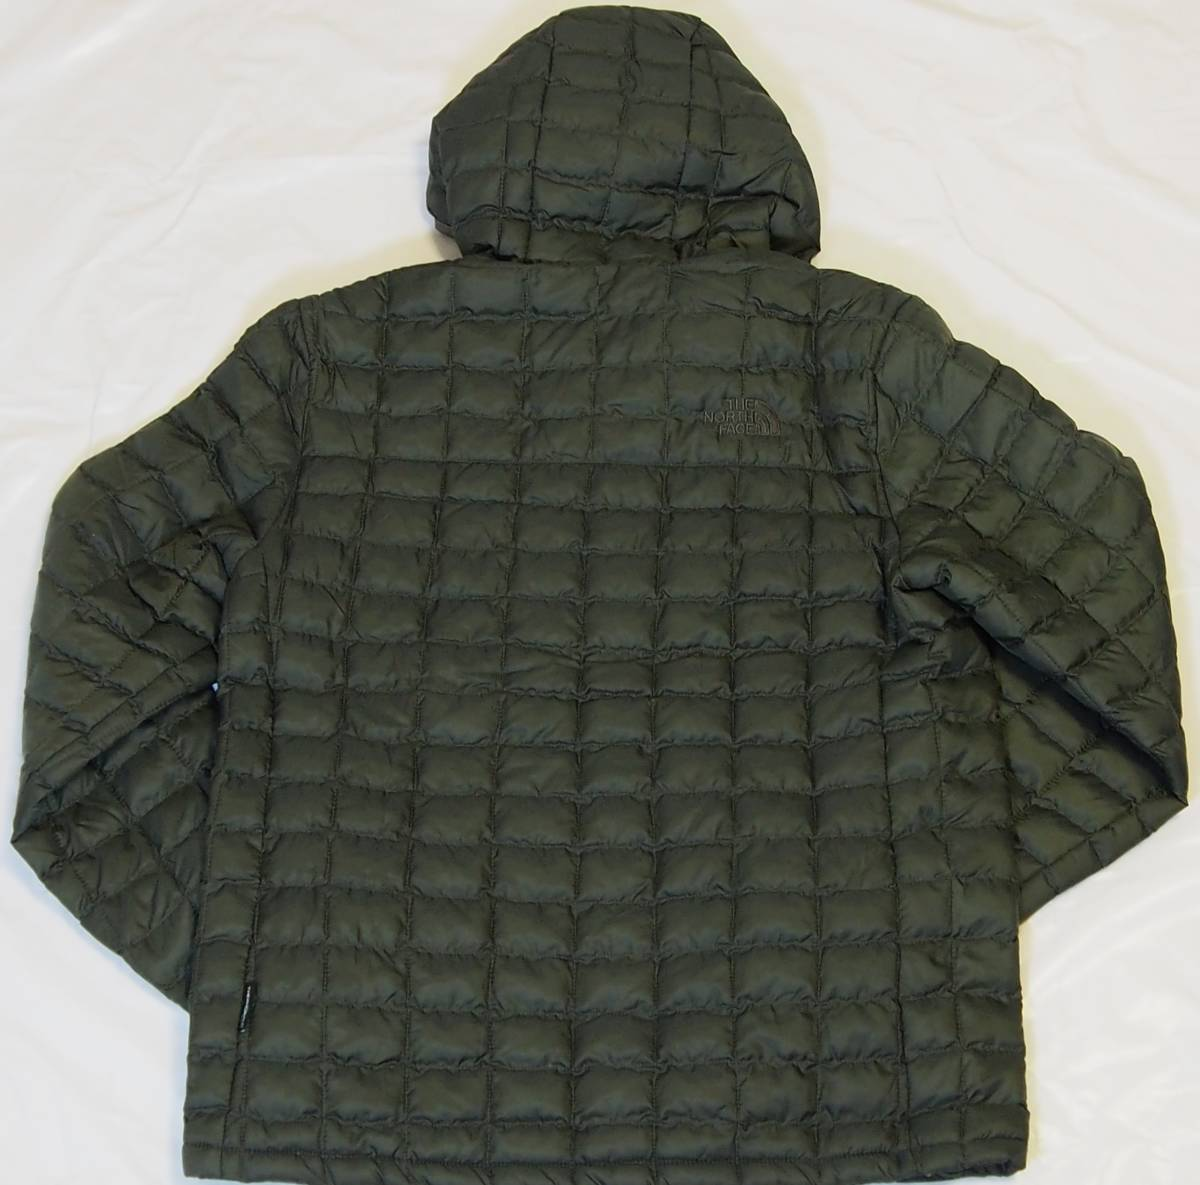 【USA購入、未使用タグ付】ノースフェイス メンズ Thermoball Eco ジャケット フード付 M グリーン The North Face NEW TAUPE GREEN Hoodie_画像3